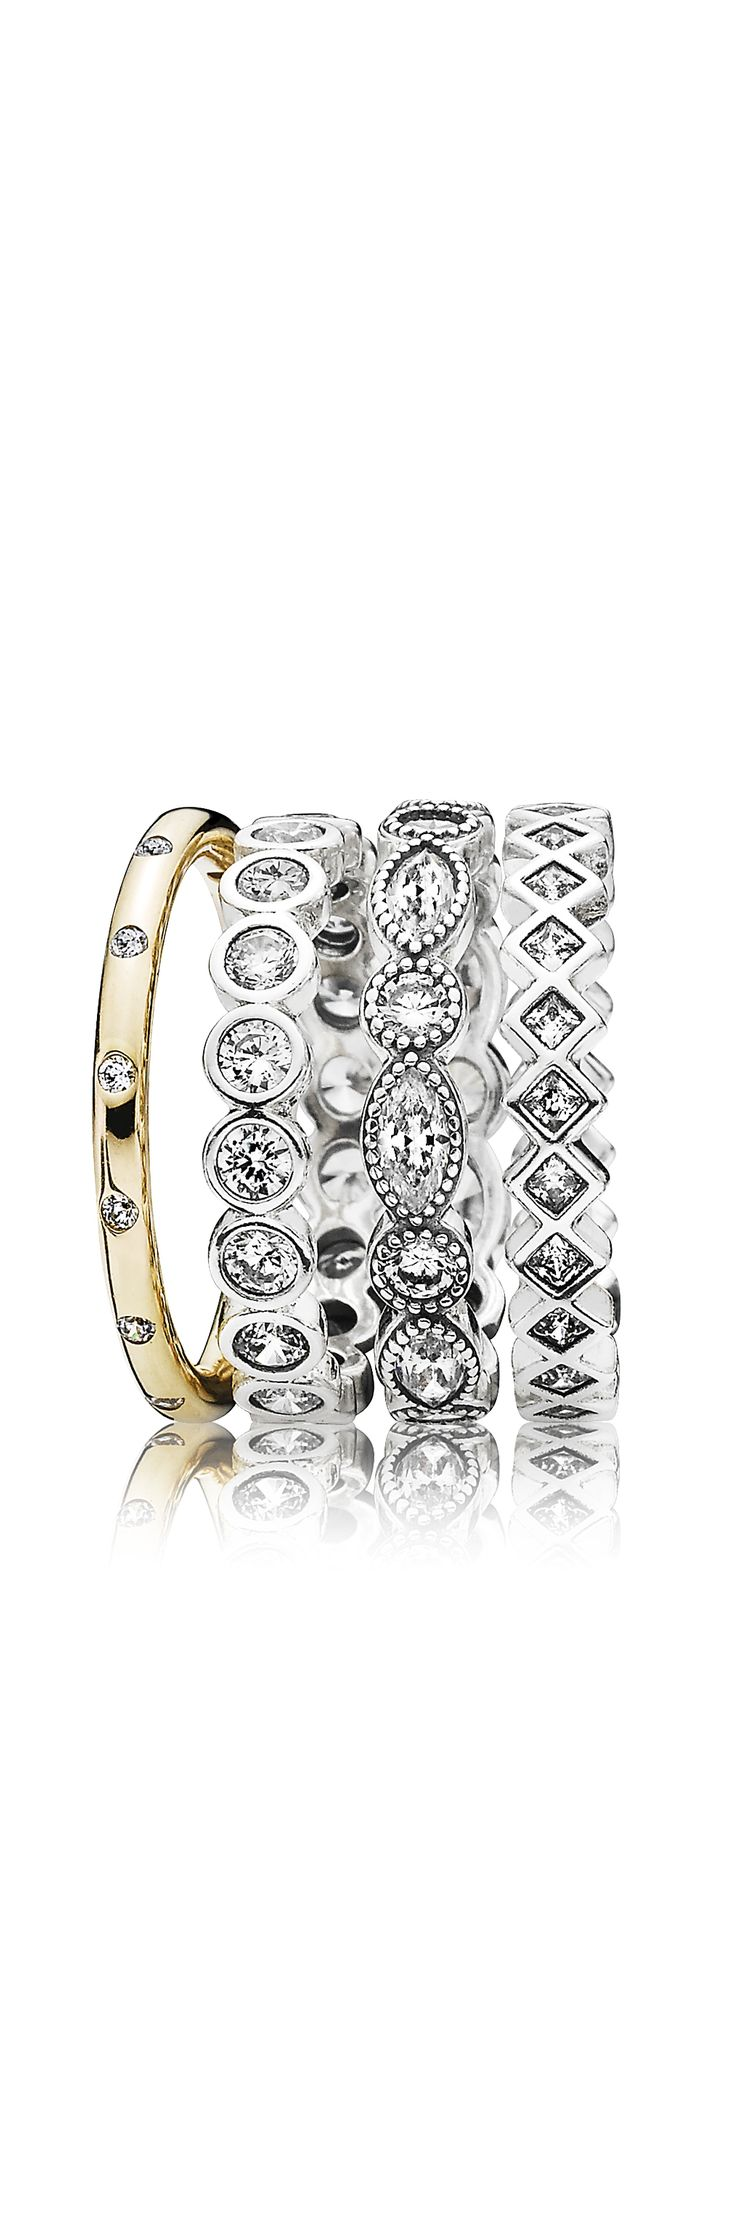 Ine design stone 187 other products - Amazing Ring Stack In Gold And Silver With Sparkling Stones Pandora Pandoraring